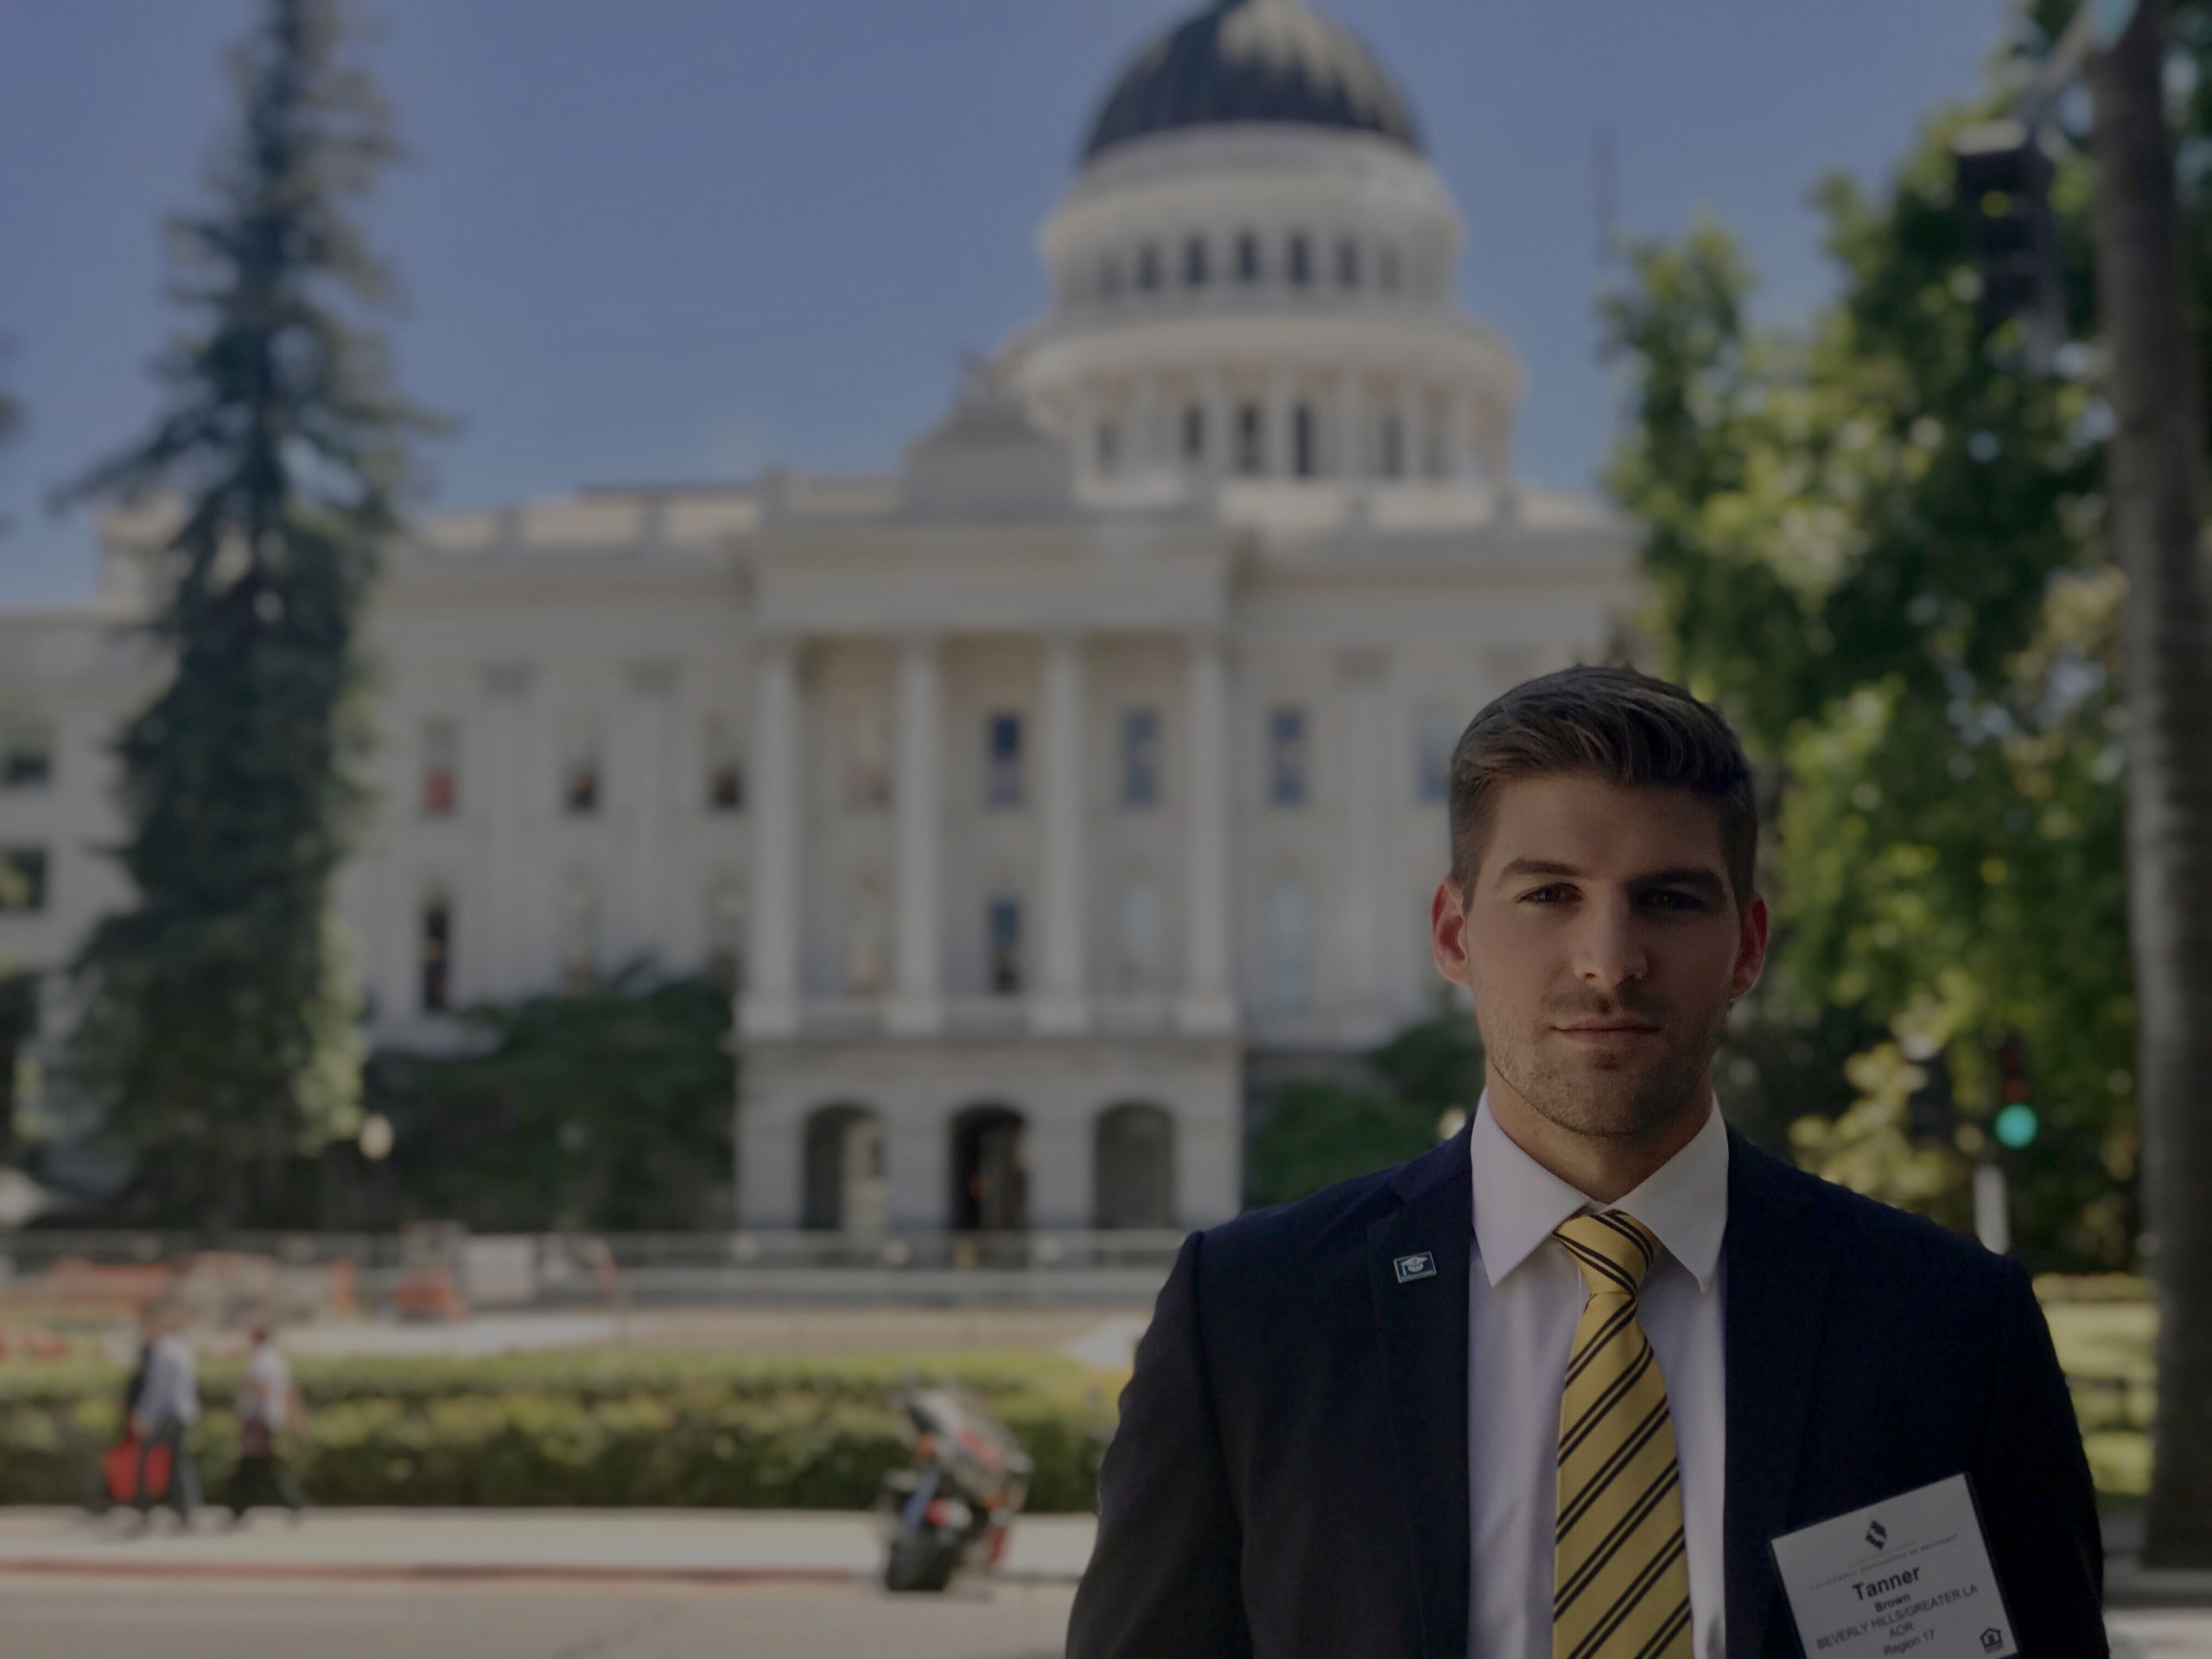 Largest REALTOR Delegation Ever Sent to Sacramento to Advocate for Increased Housing Stock